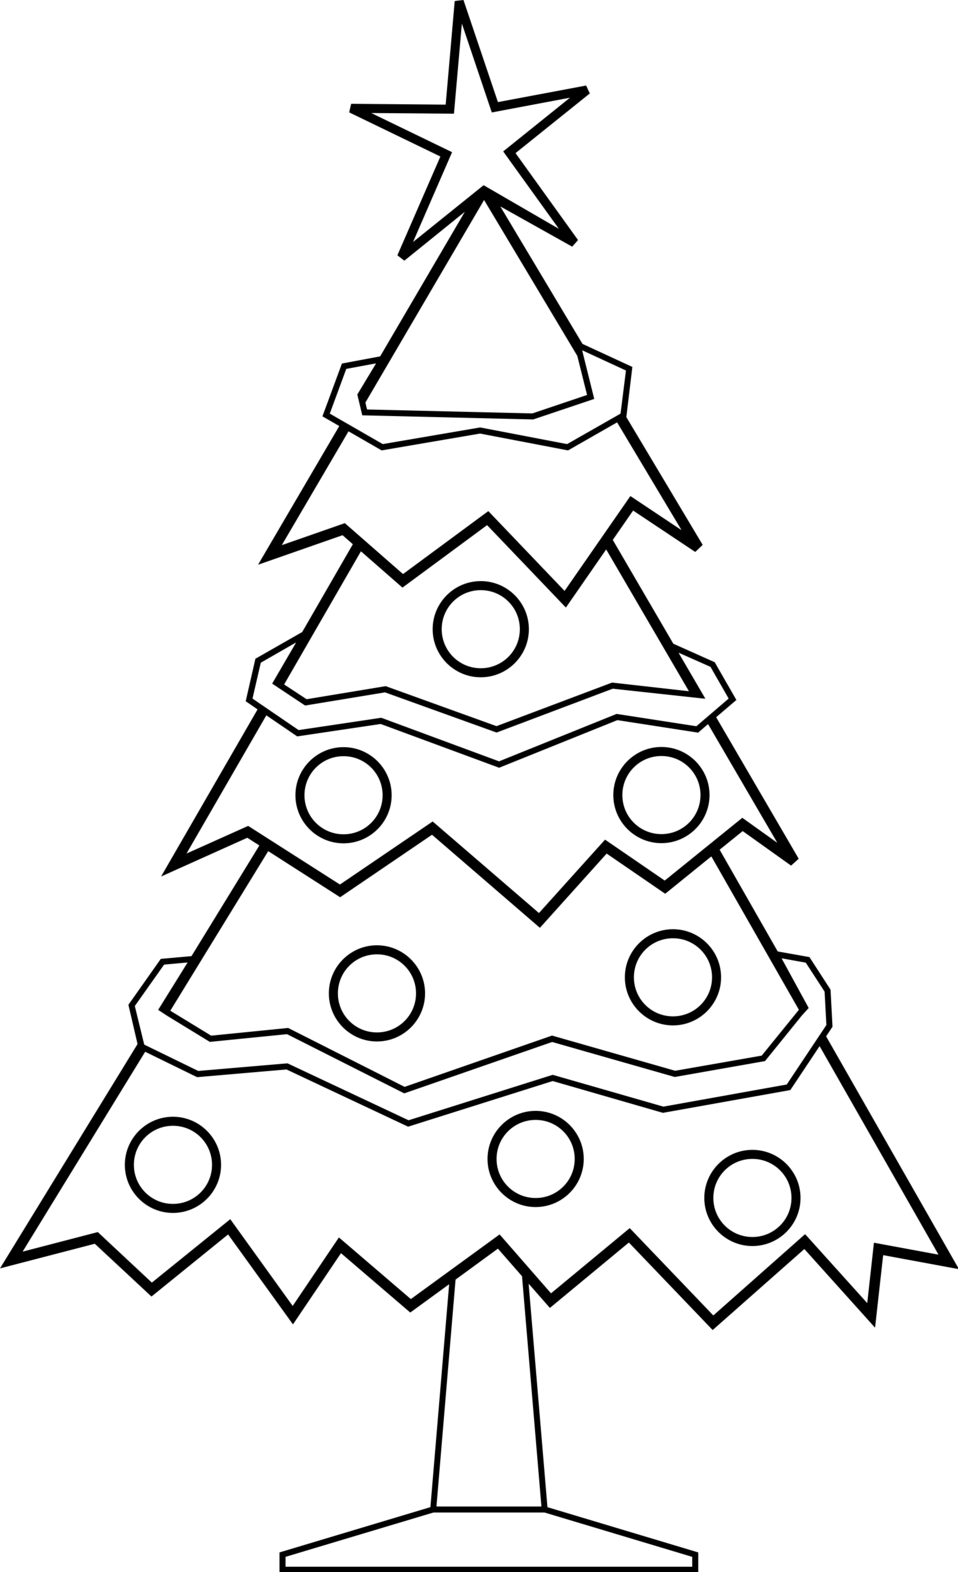 958x1572 Christmas Tree Drawing Black And White Find Craft Ideas